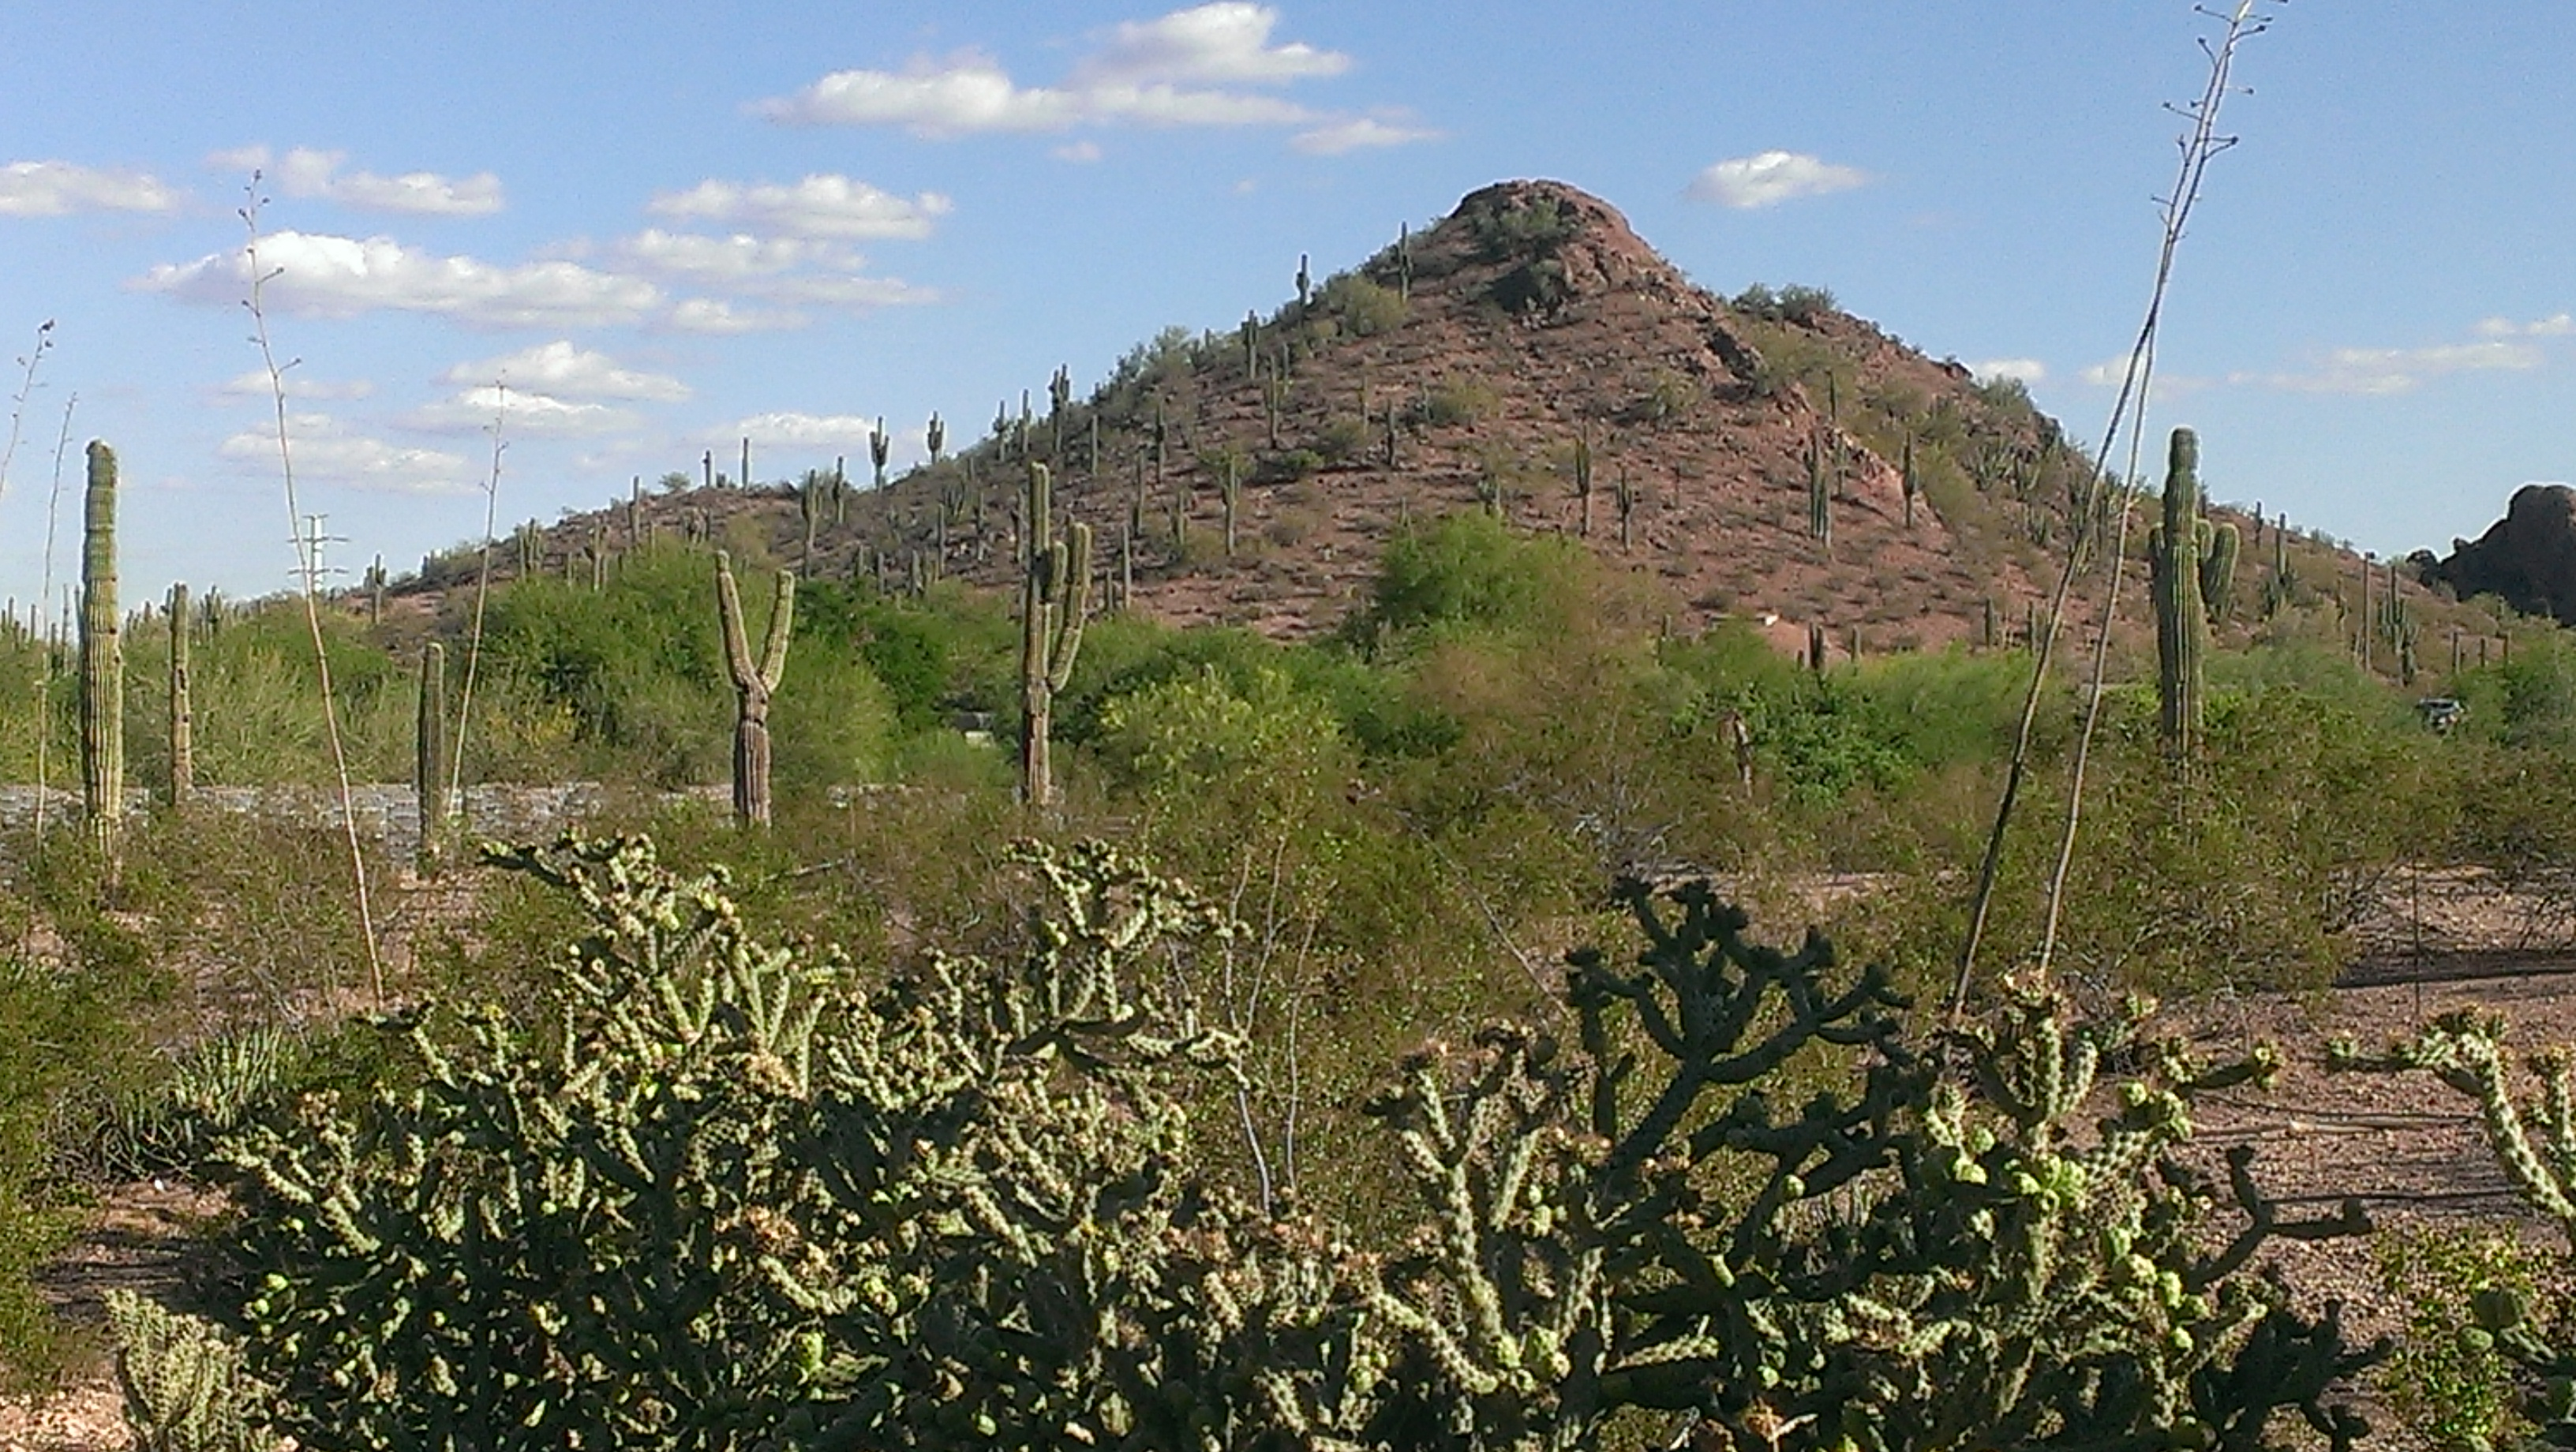 mountain near Desert Botanical Gardens Scottsdale AZ